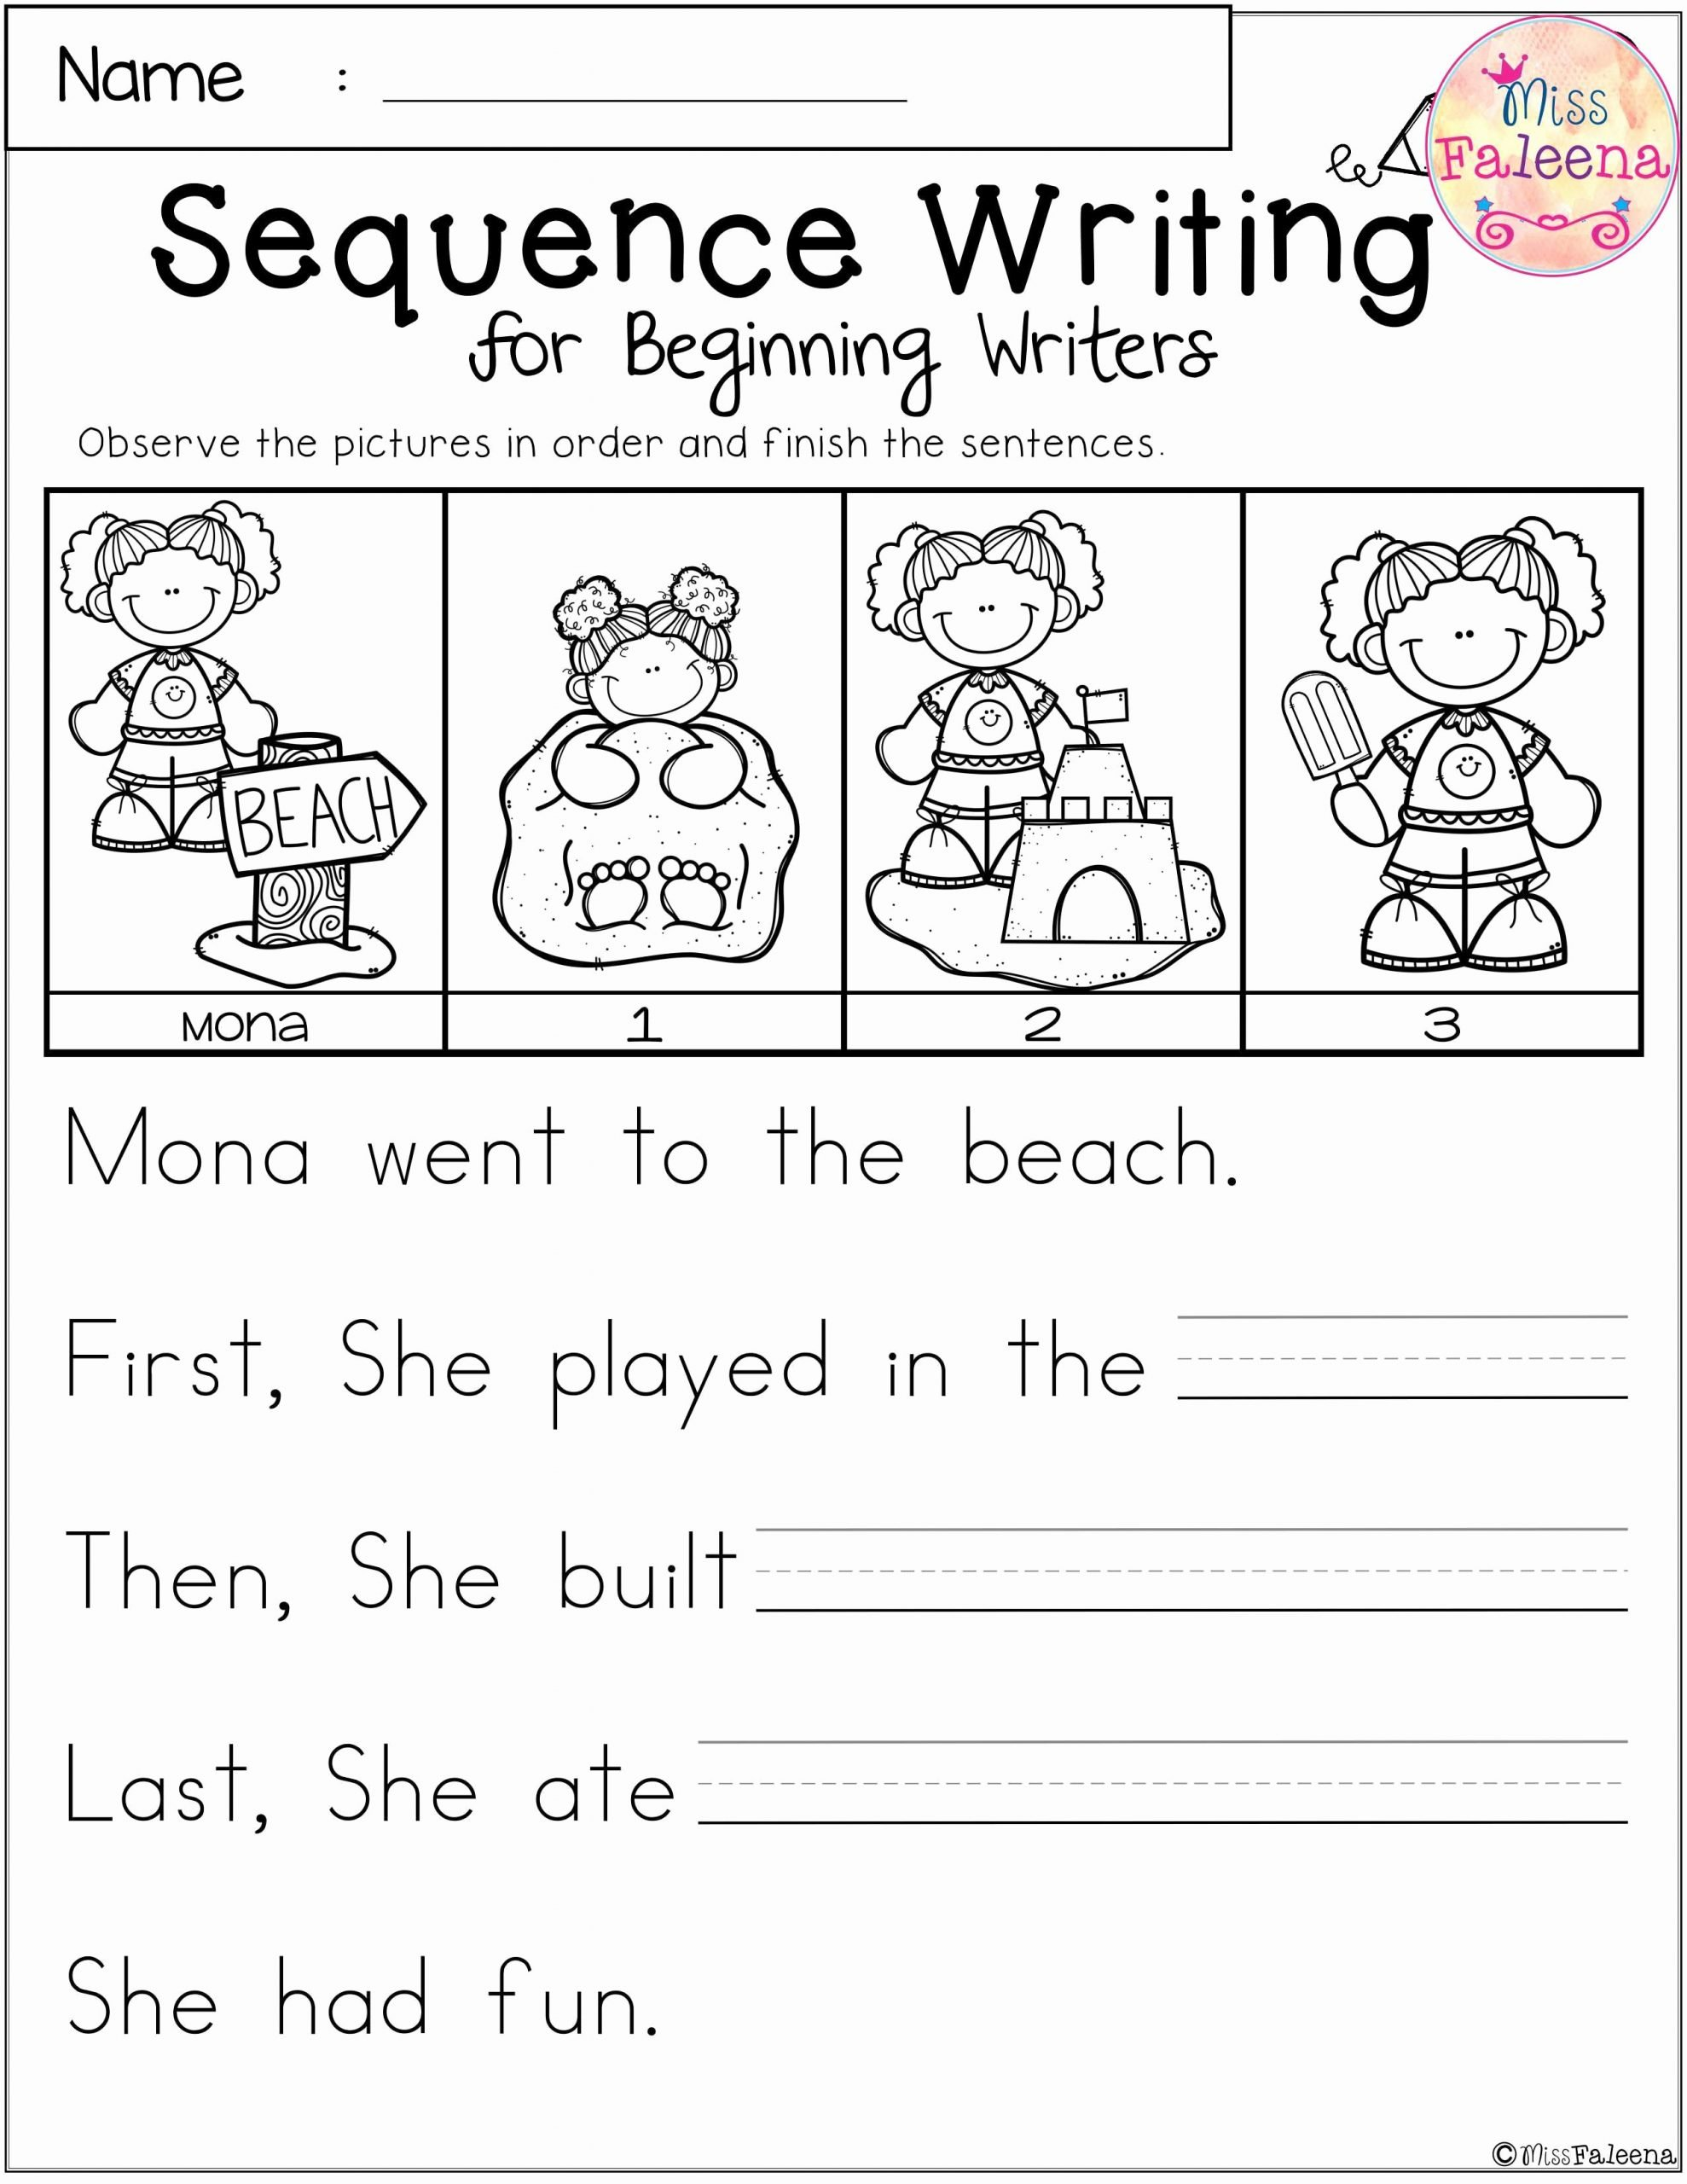 Picture Sequencing Worksheets for Preschoolers New Free Sequence Writing for Beginning Writers